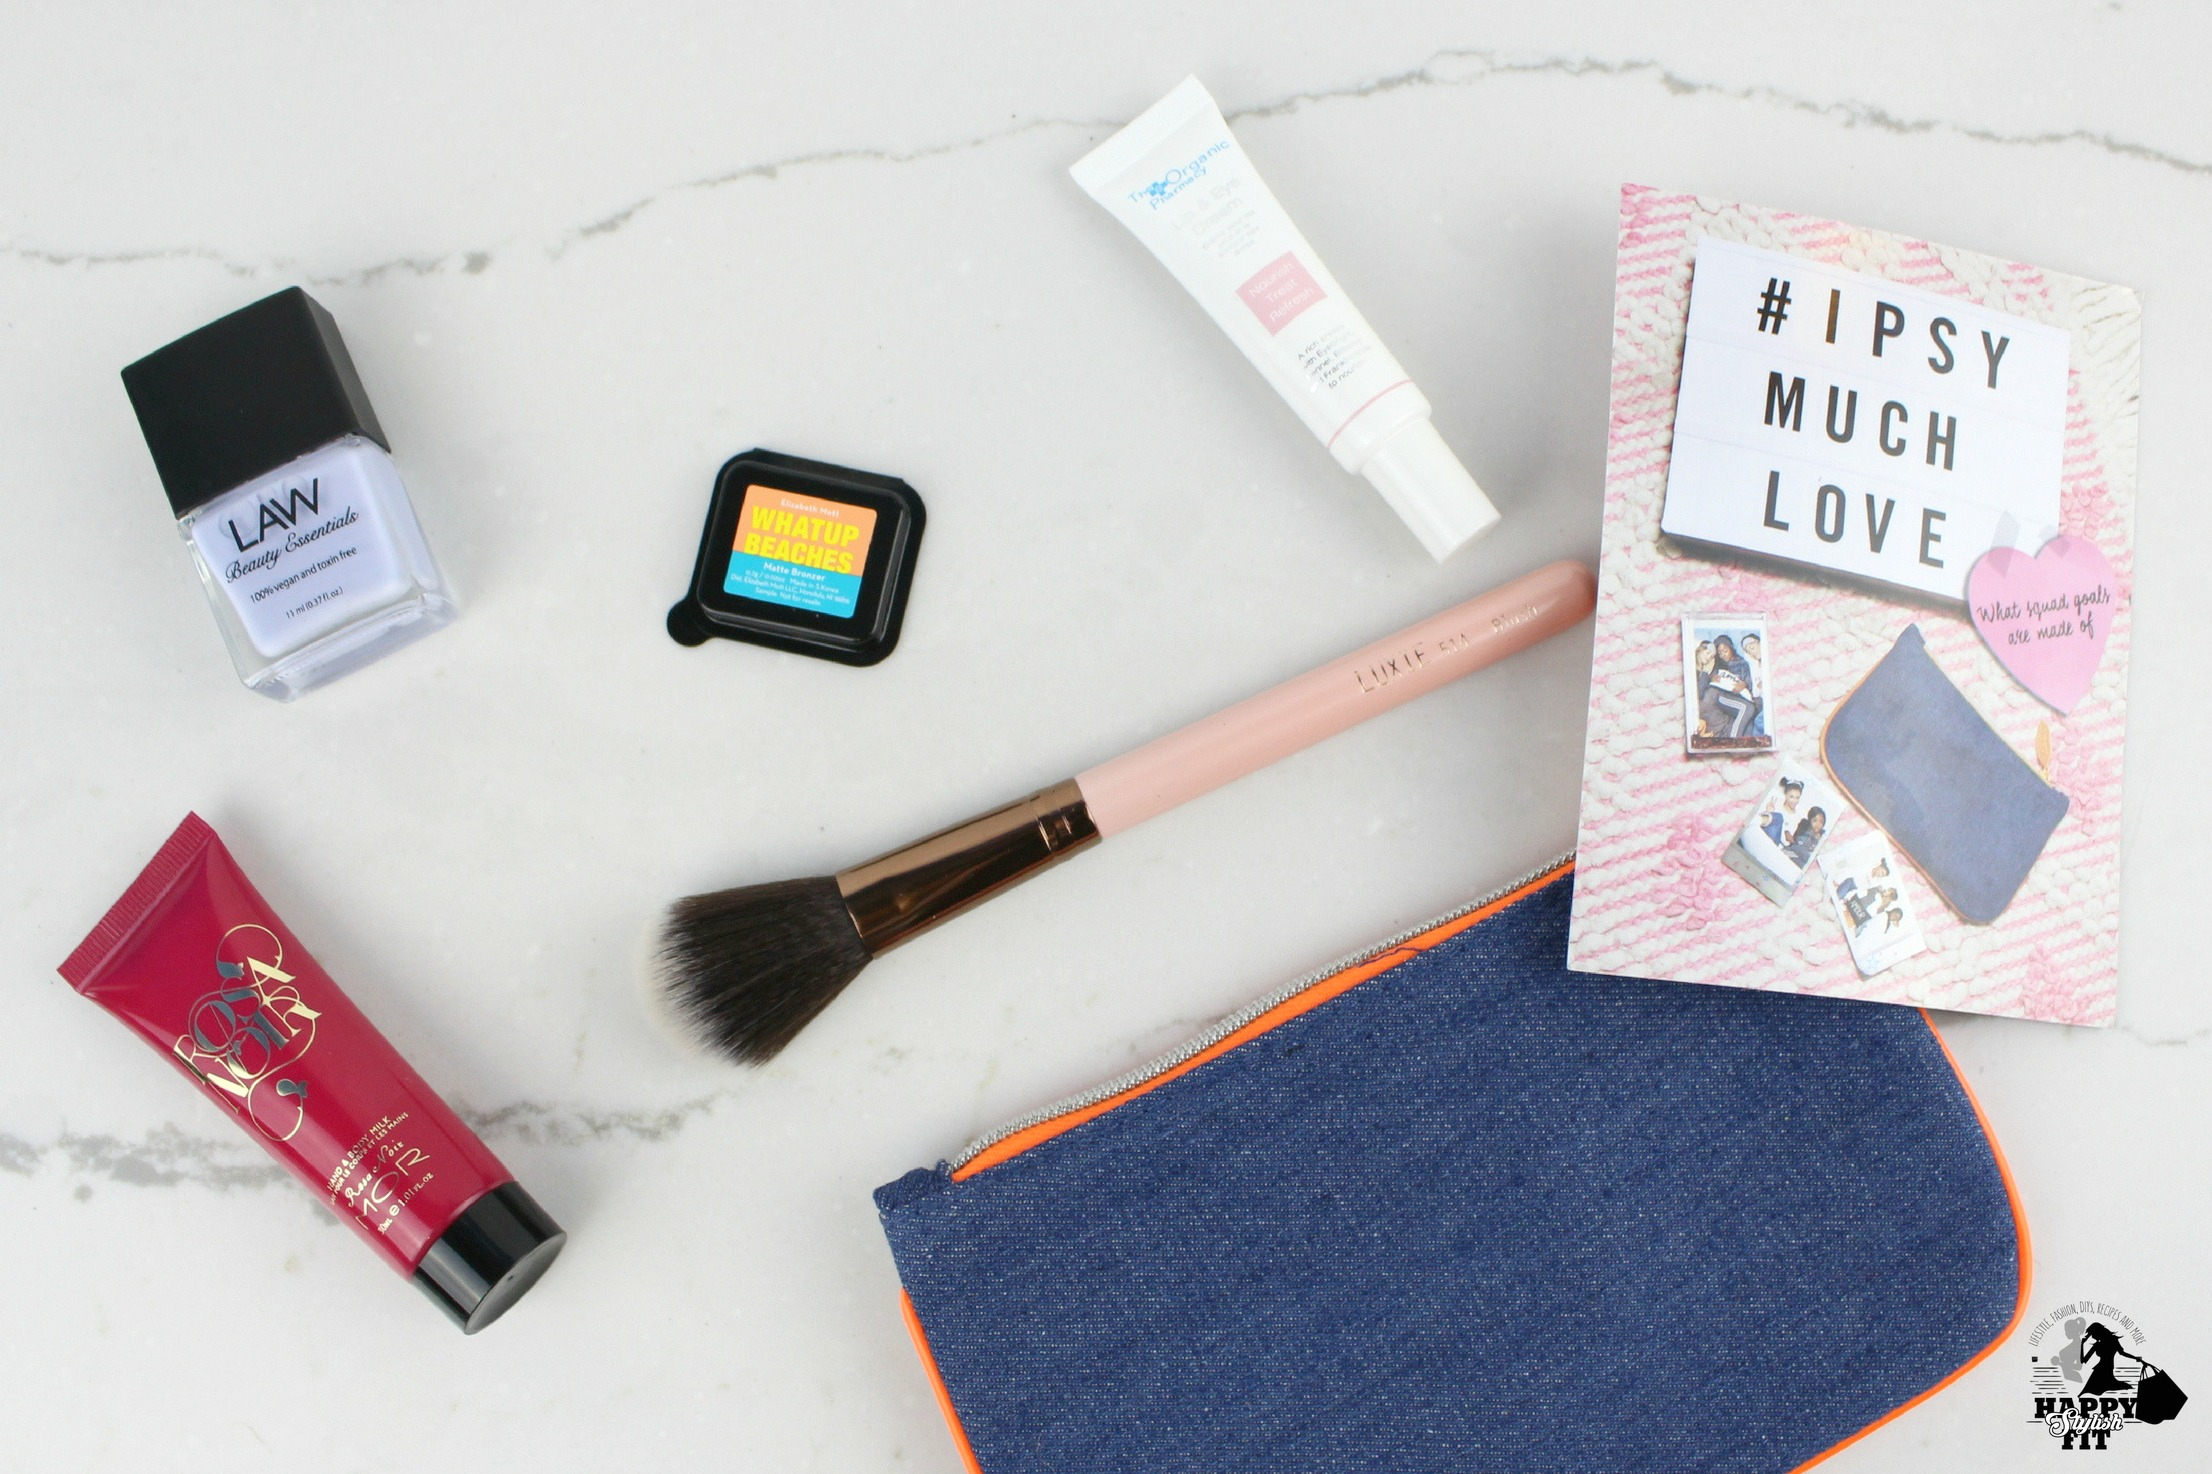 February Ipsy Review featuring Luxie Brushes, Elizabeth Mott Bronzer, Rosa Noir Hand Cream, The Organic Pharmacy Lip and Eye Cream, and Law Beauty Essentials Nail Polish.